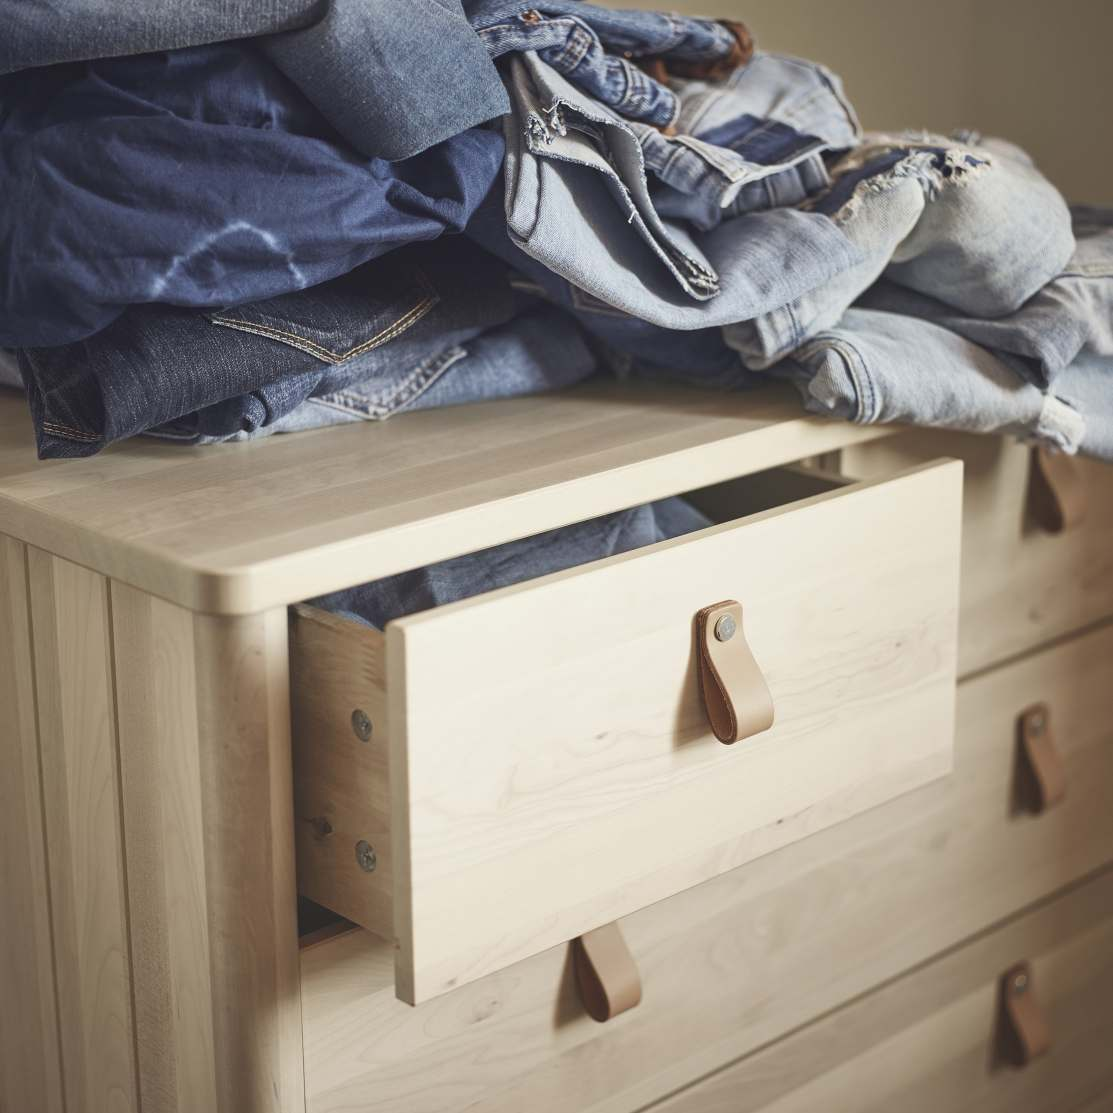 New items - IKEA Spring 2018 - BJÖRKSNÄS chest of drawers